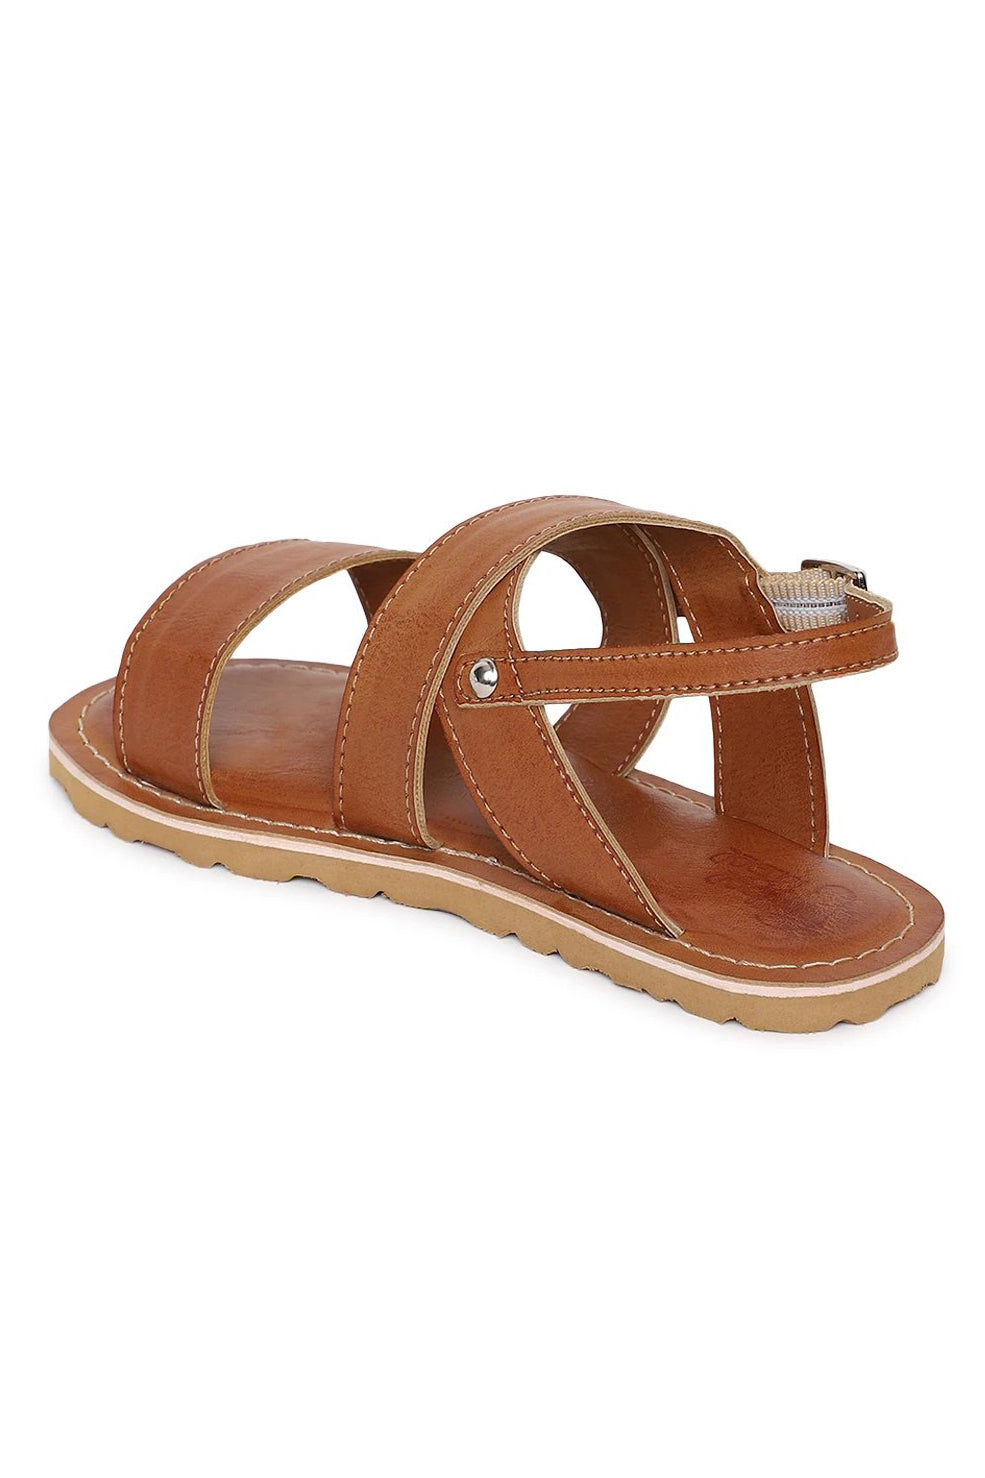 Boy Brown Criss Cross Sandal